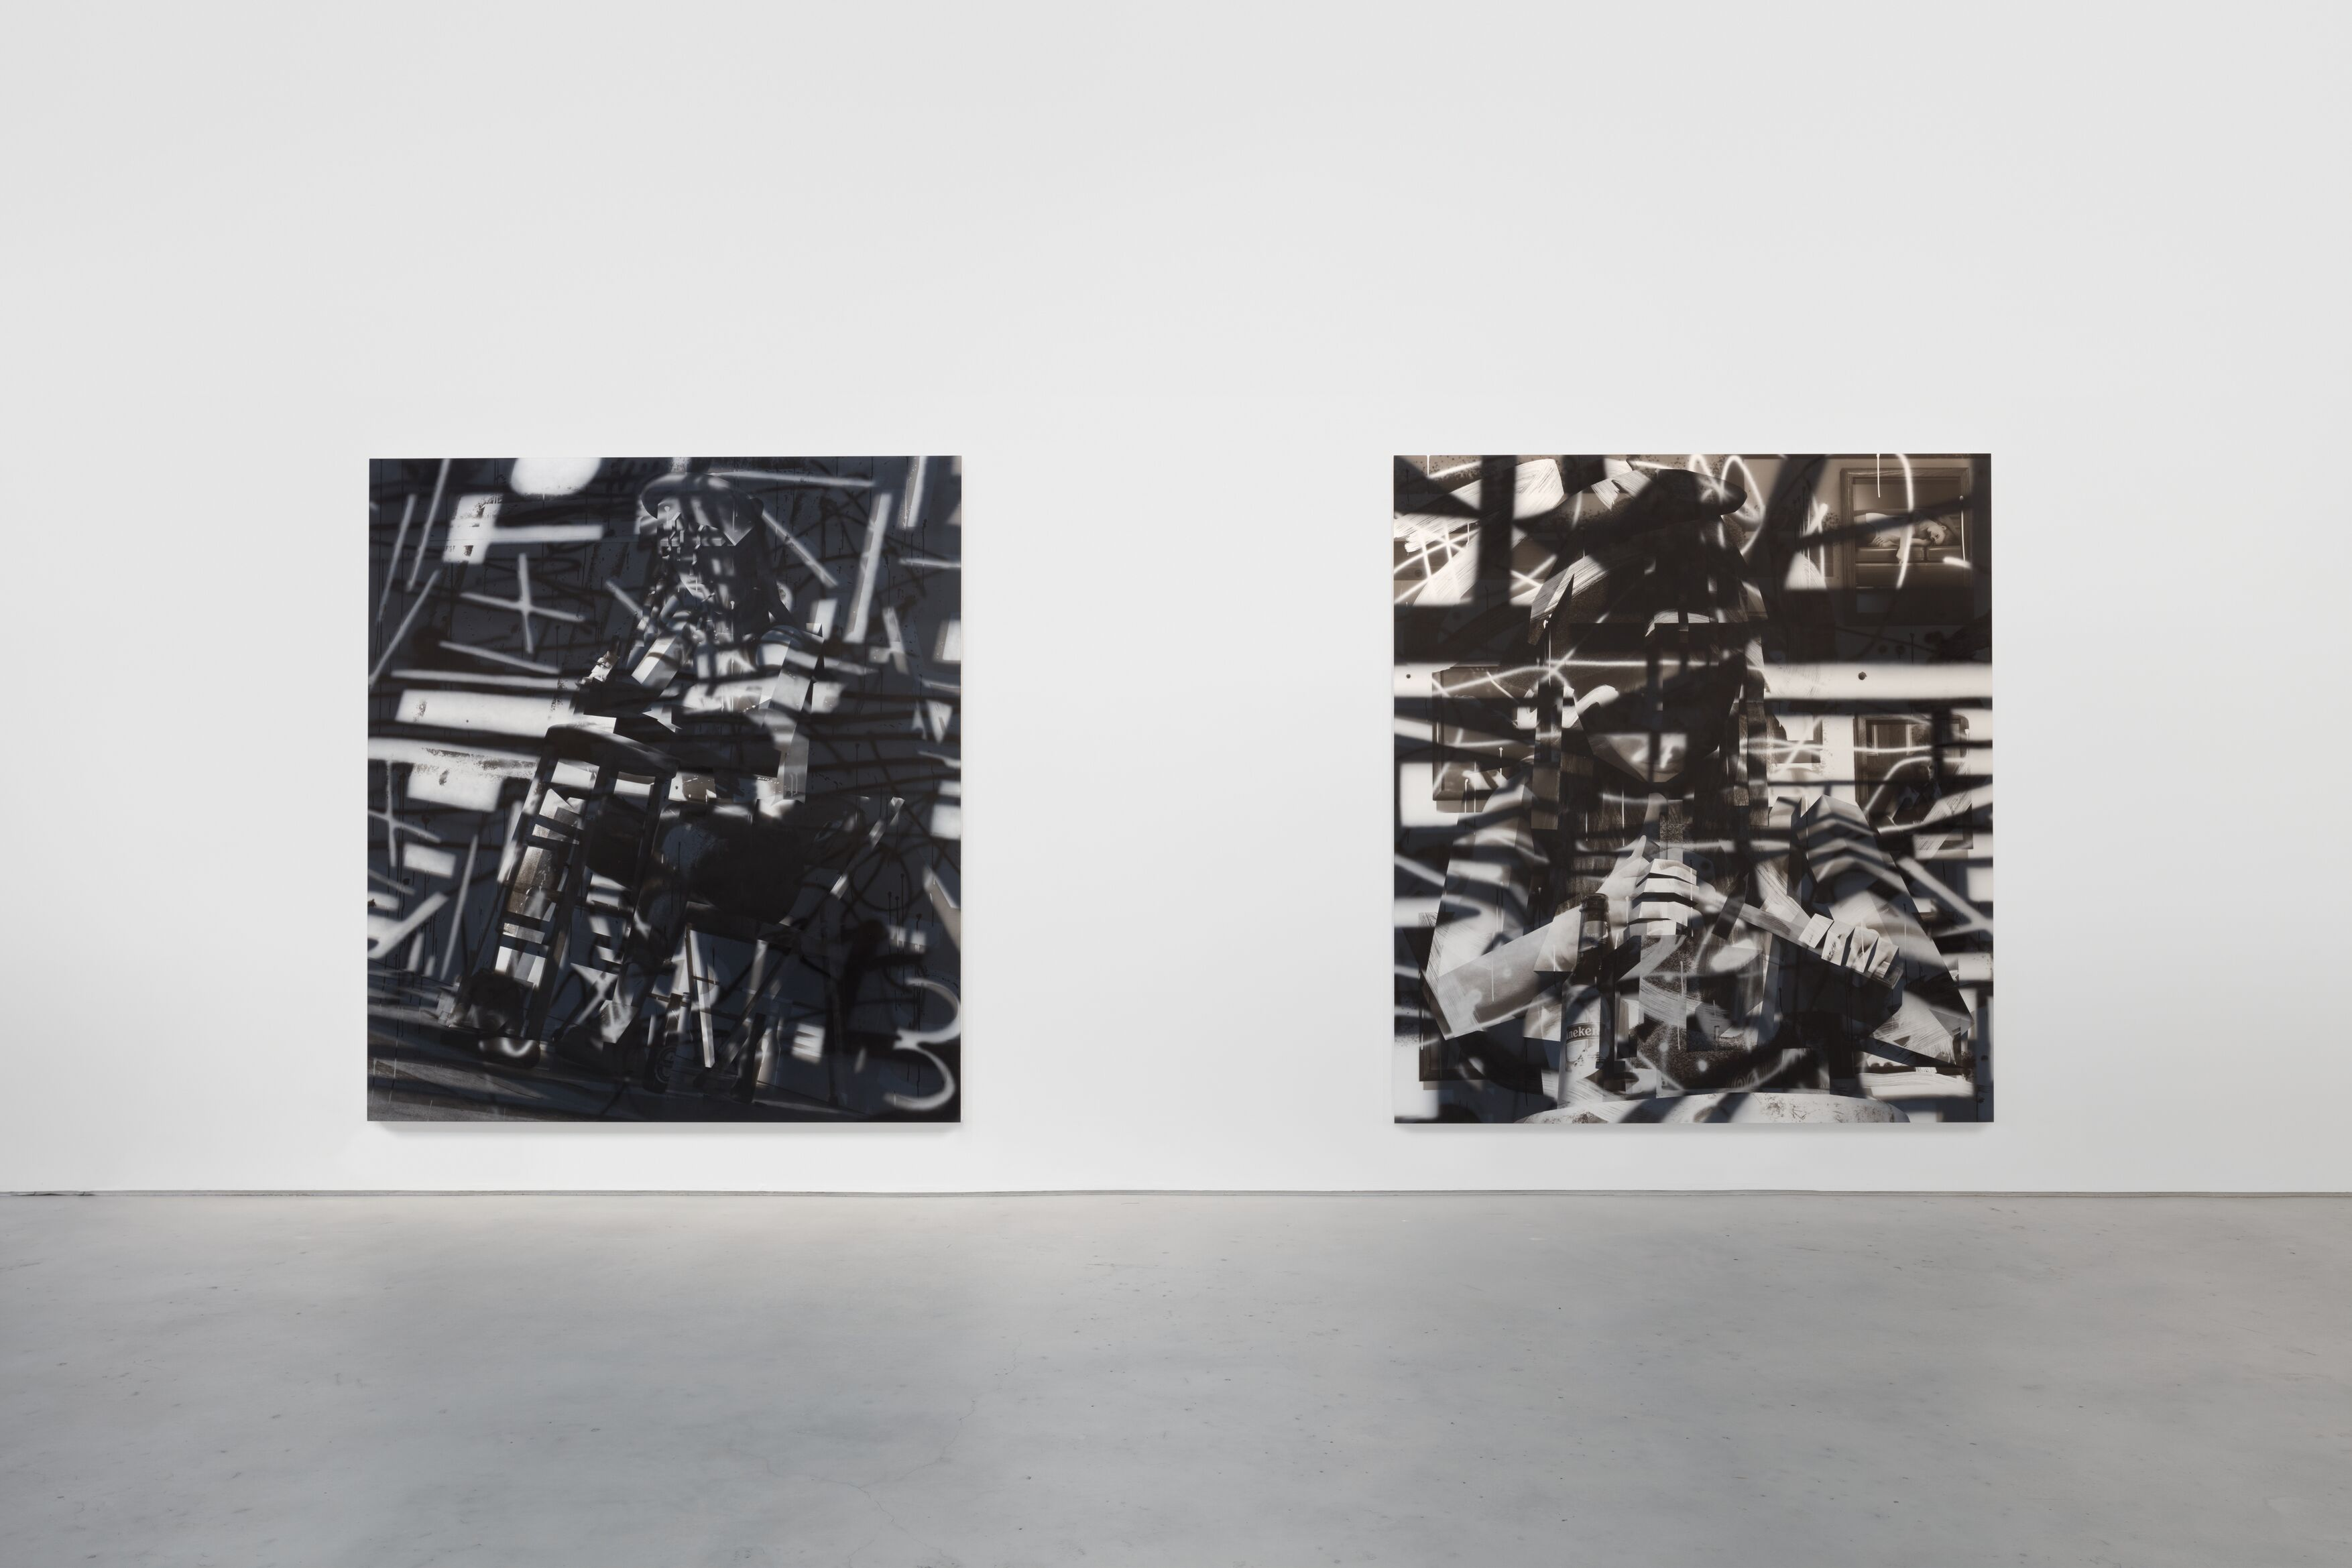 Installation view, 'Avery Singer. Reality Ender,' Hauser & Wirth New York, 22nd Street, 2021. Picturing: 'Studio,' 2019, Solomon R. Guggenheim Museum, New York, Purchased with funds contributed by Richard Weinberg, 2020; 'Sculptor,' 2021, © Avery Singer, courtesy the artist, Hauser & Wirth, and Kraupa-Tuskany Zeidler, Berlin Photo: Lance Brewer